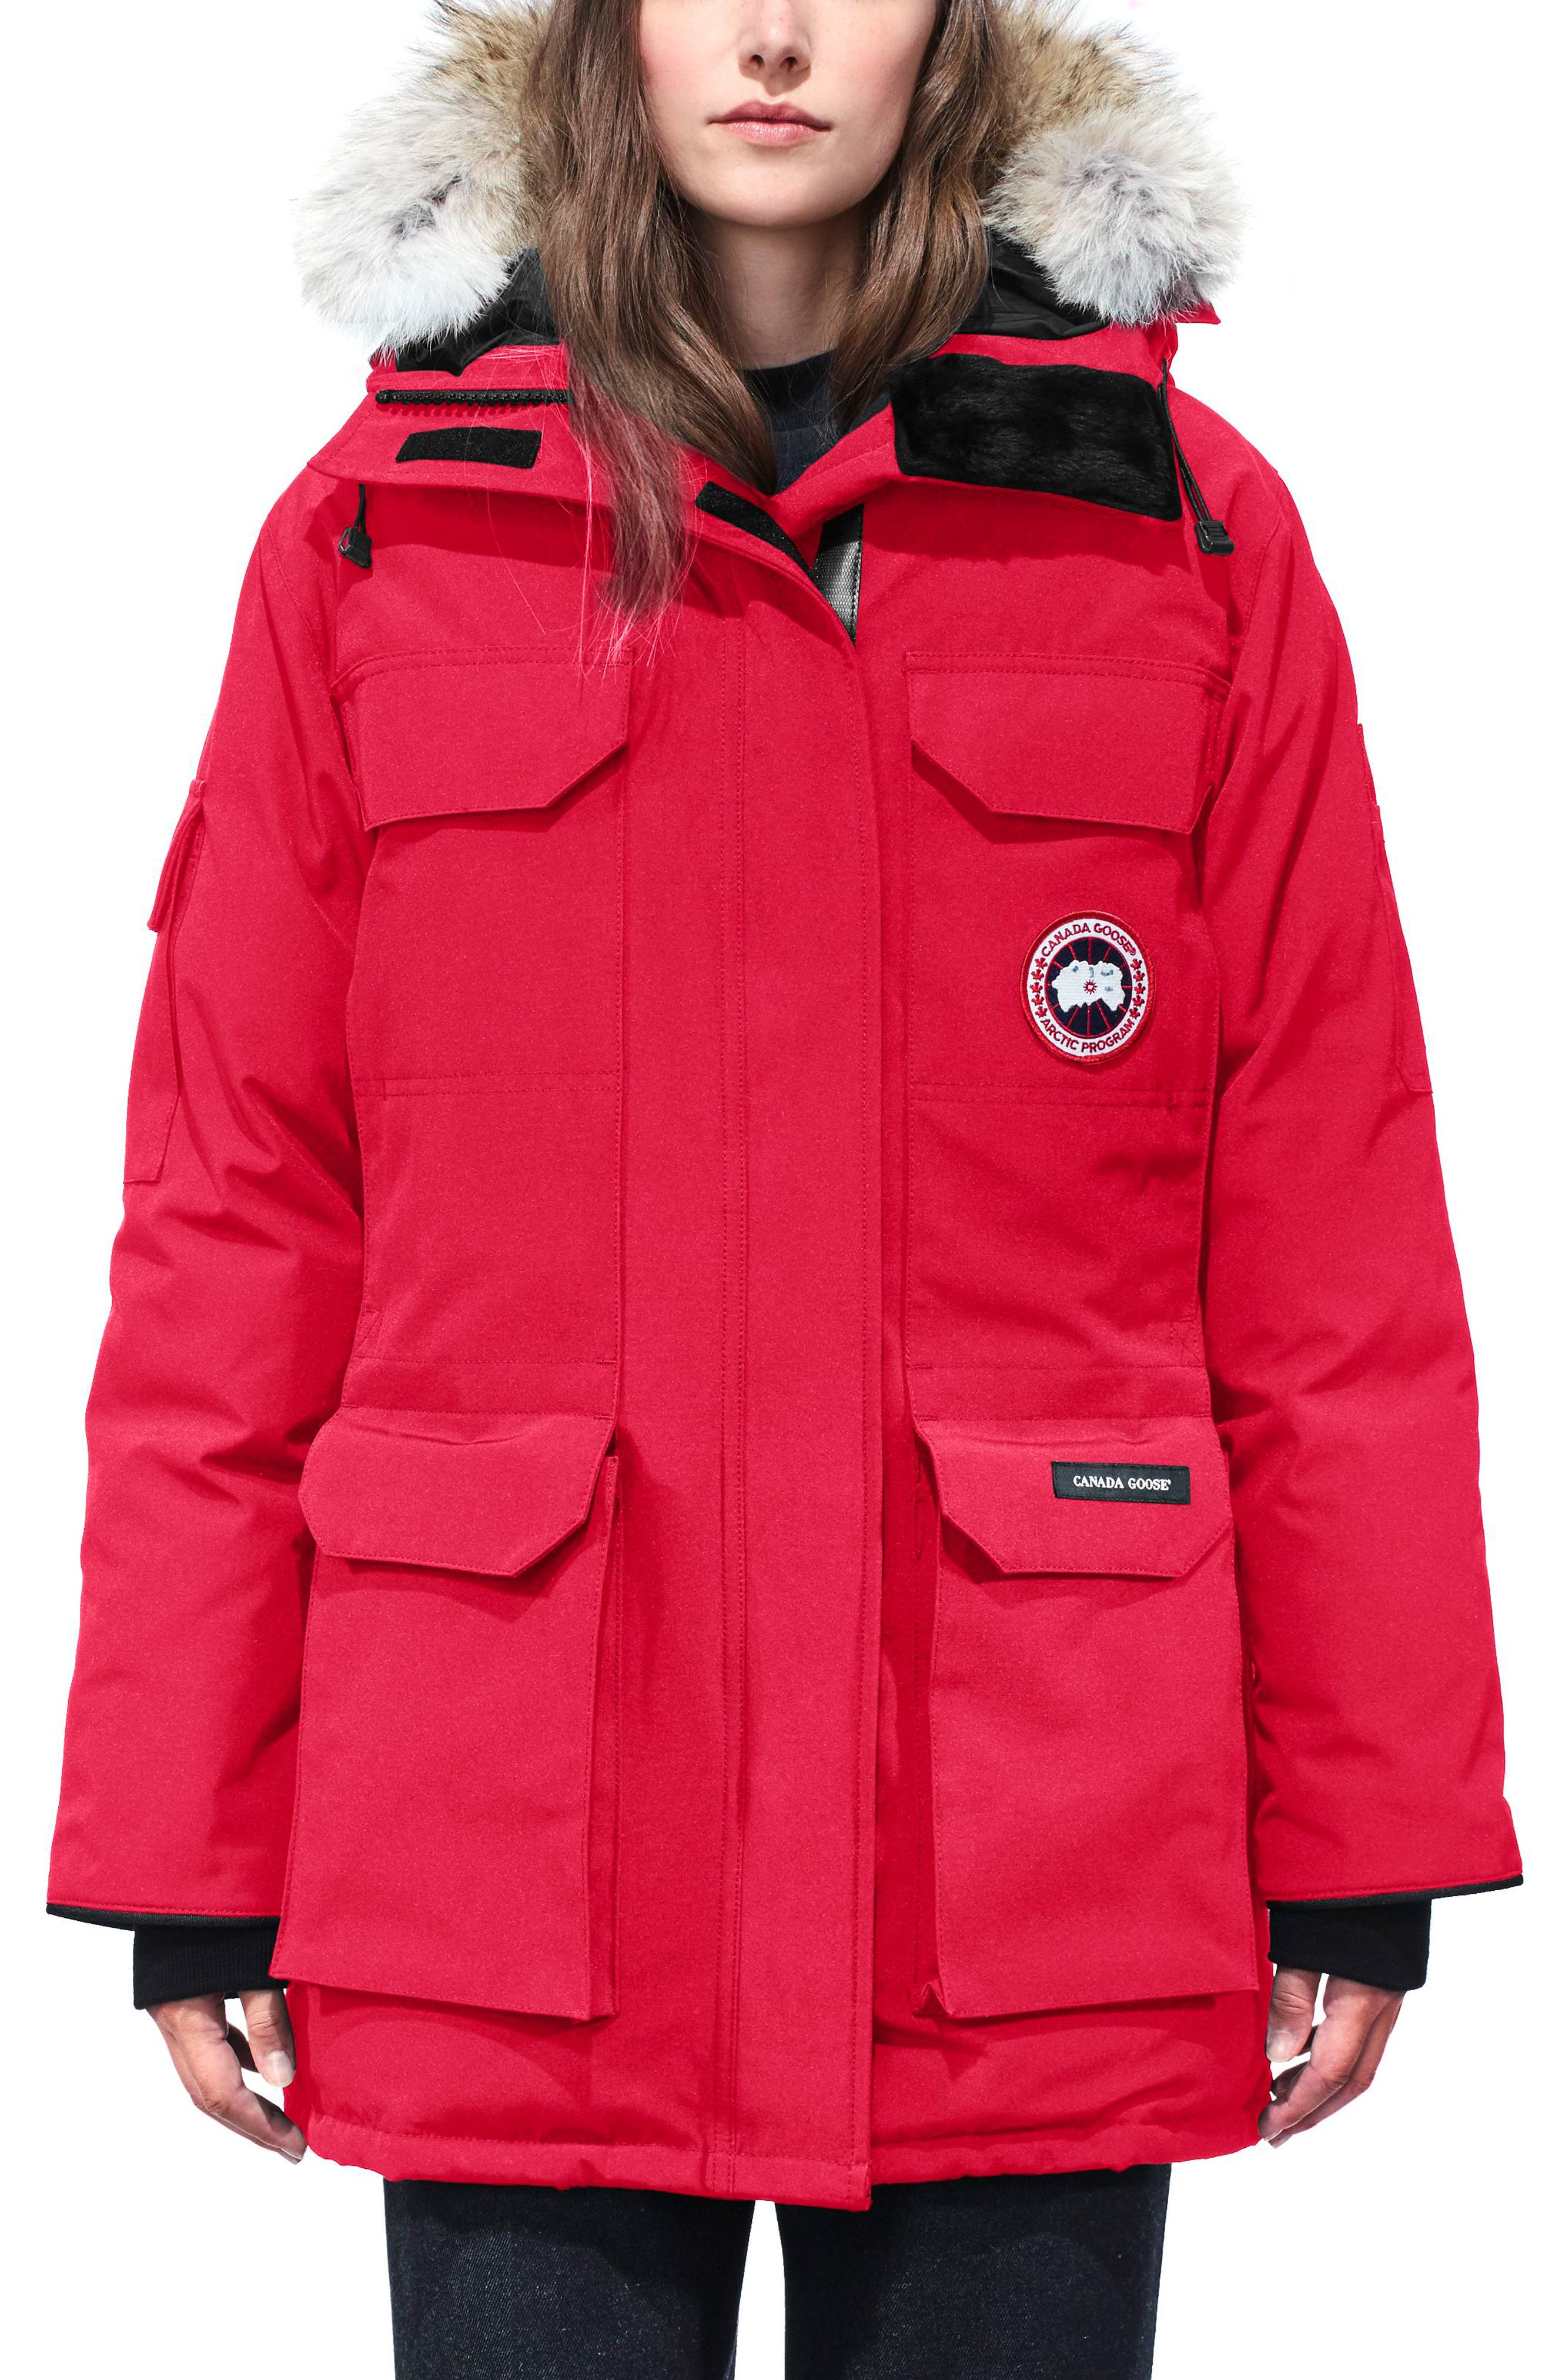 Main Image - Canada Goose 'Expedition' Relaxed Fit Down Parka with Genuine Coyote Fur